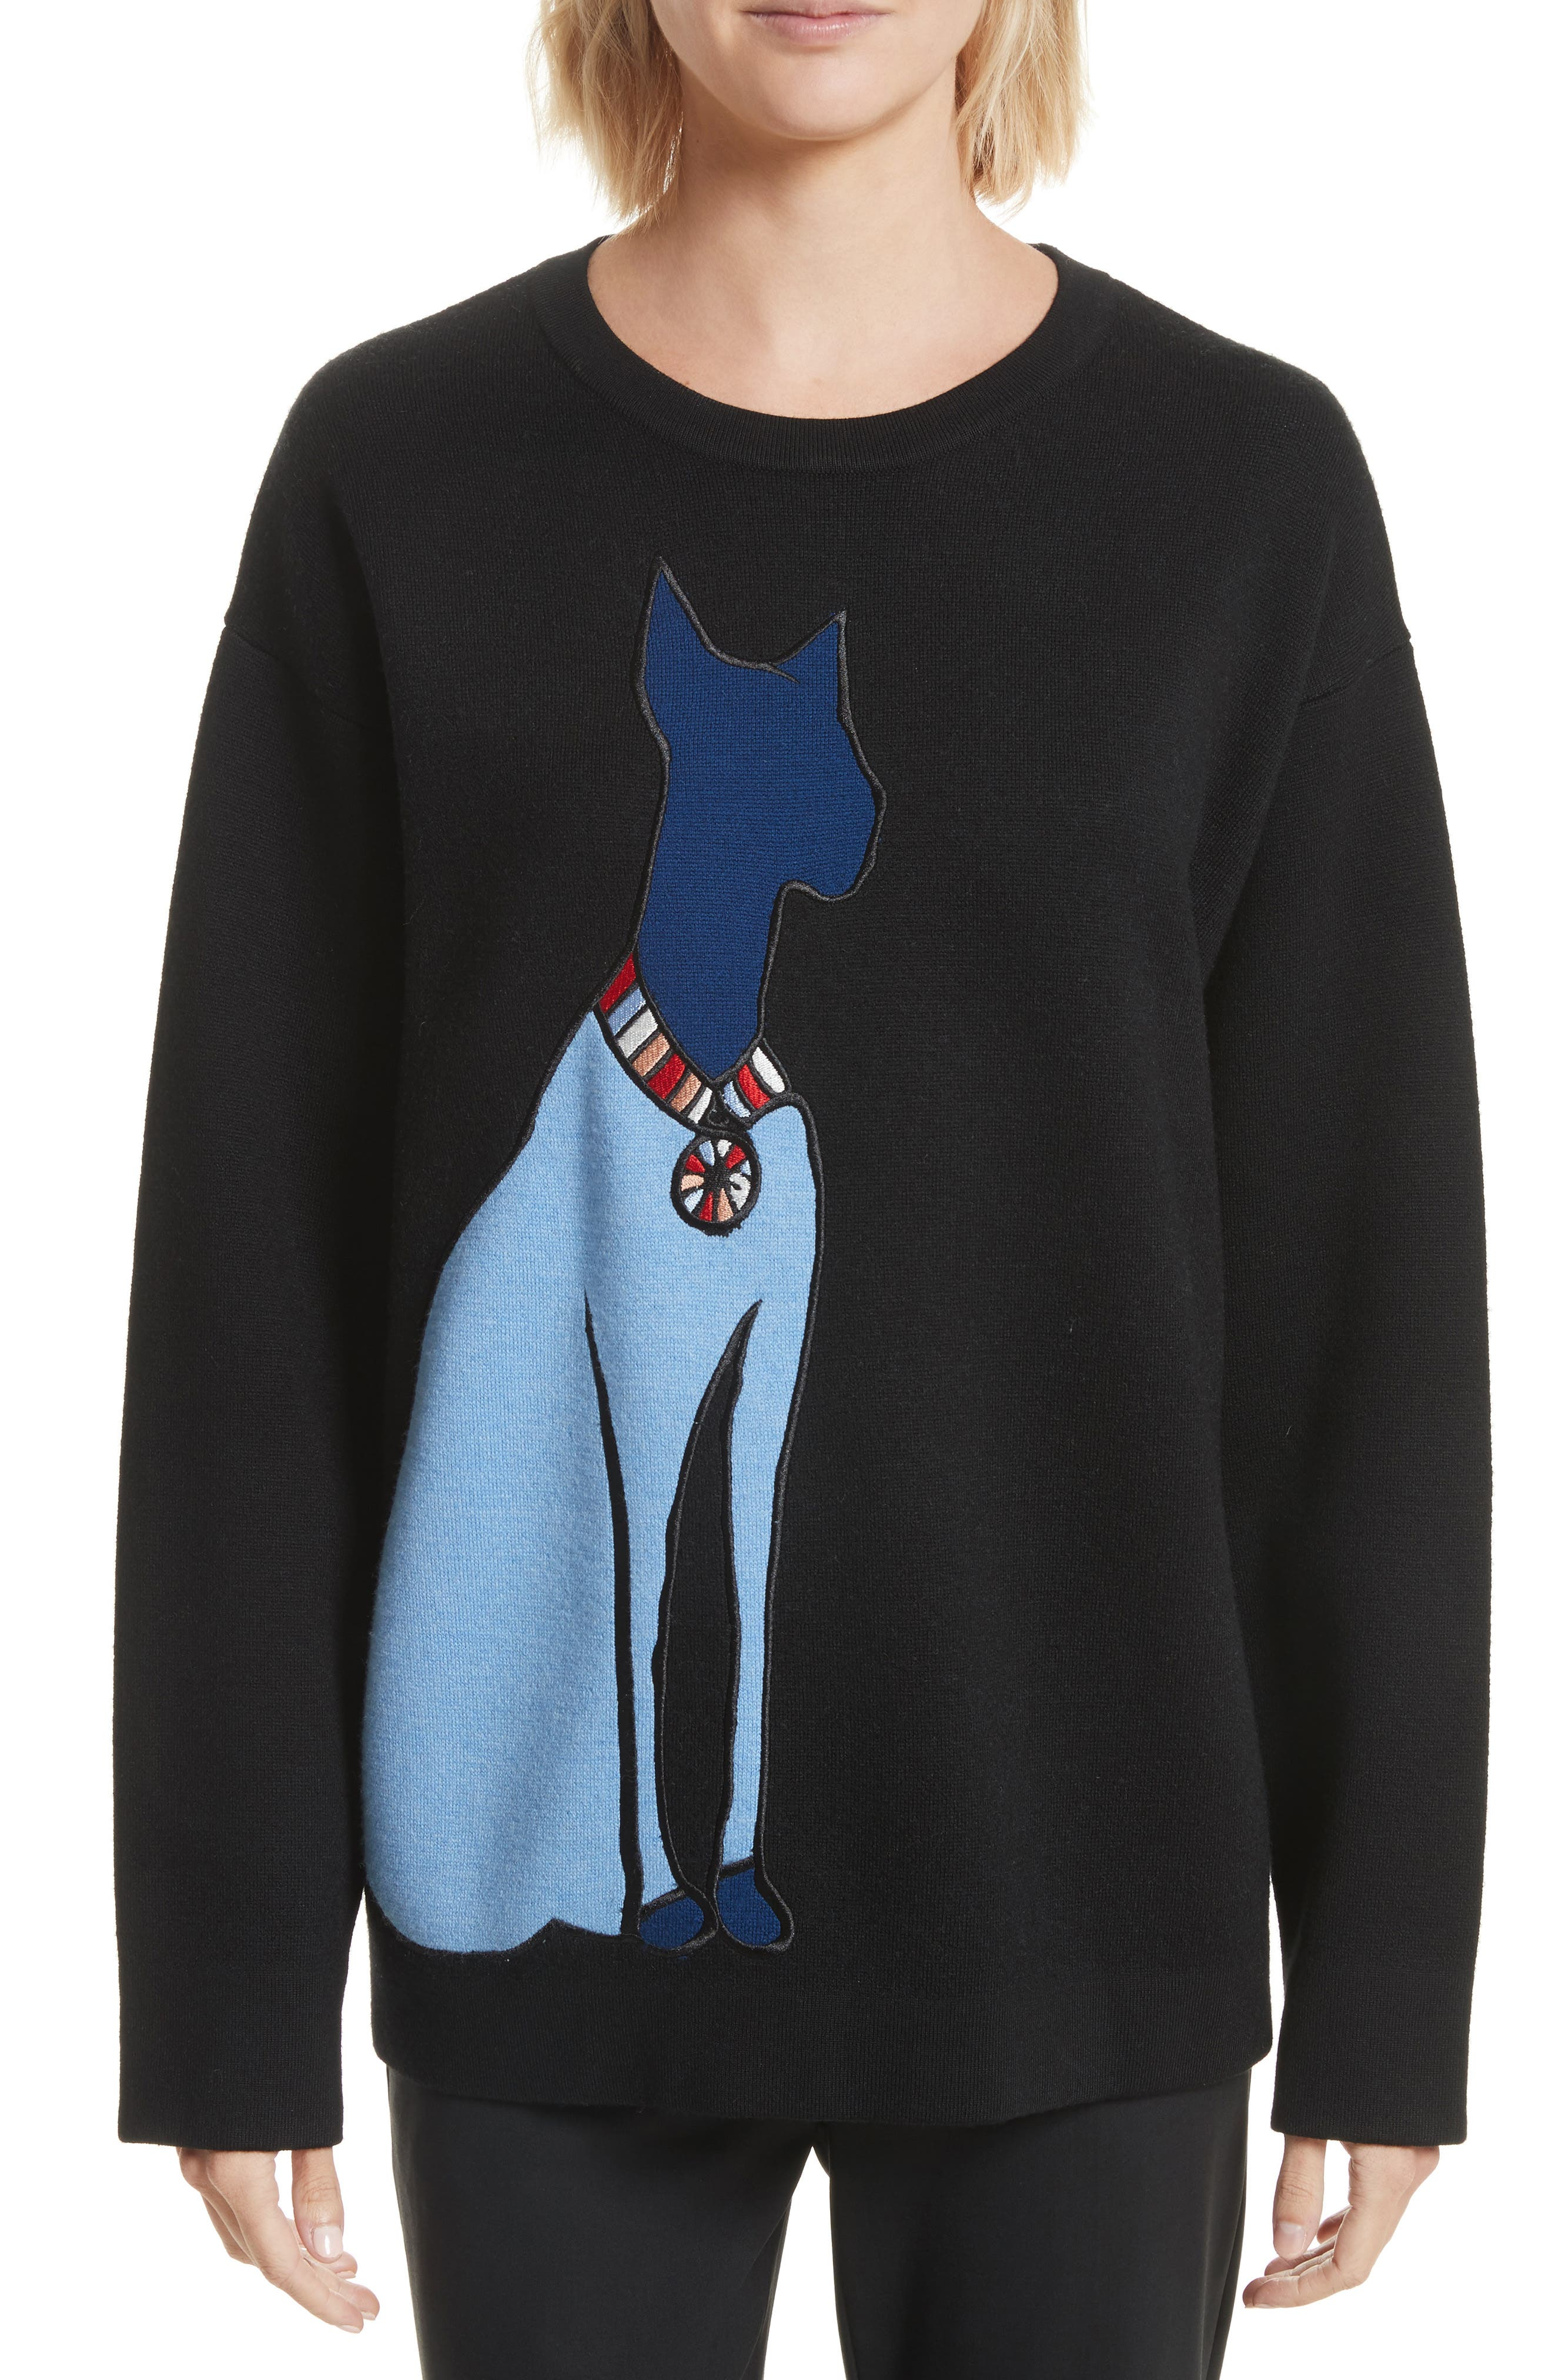 GREY JASON WU Embroidered Cat Pullover